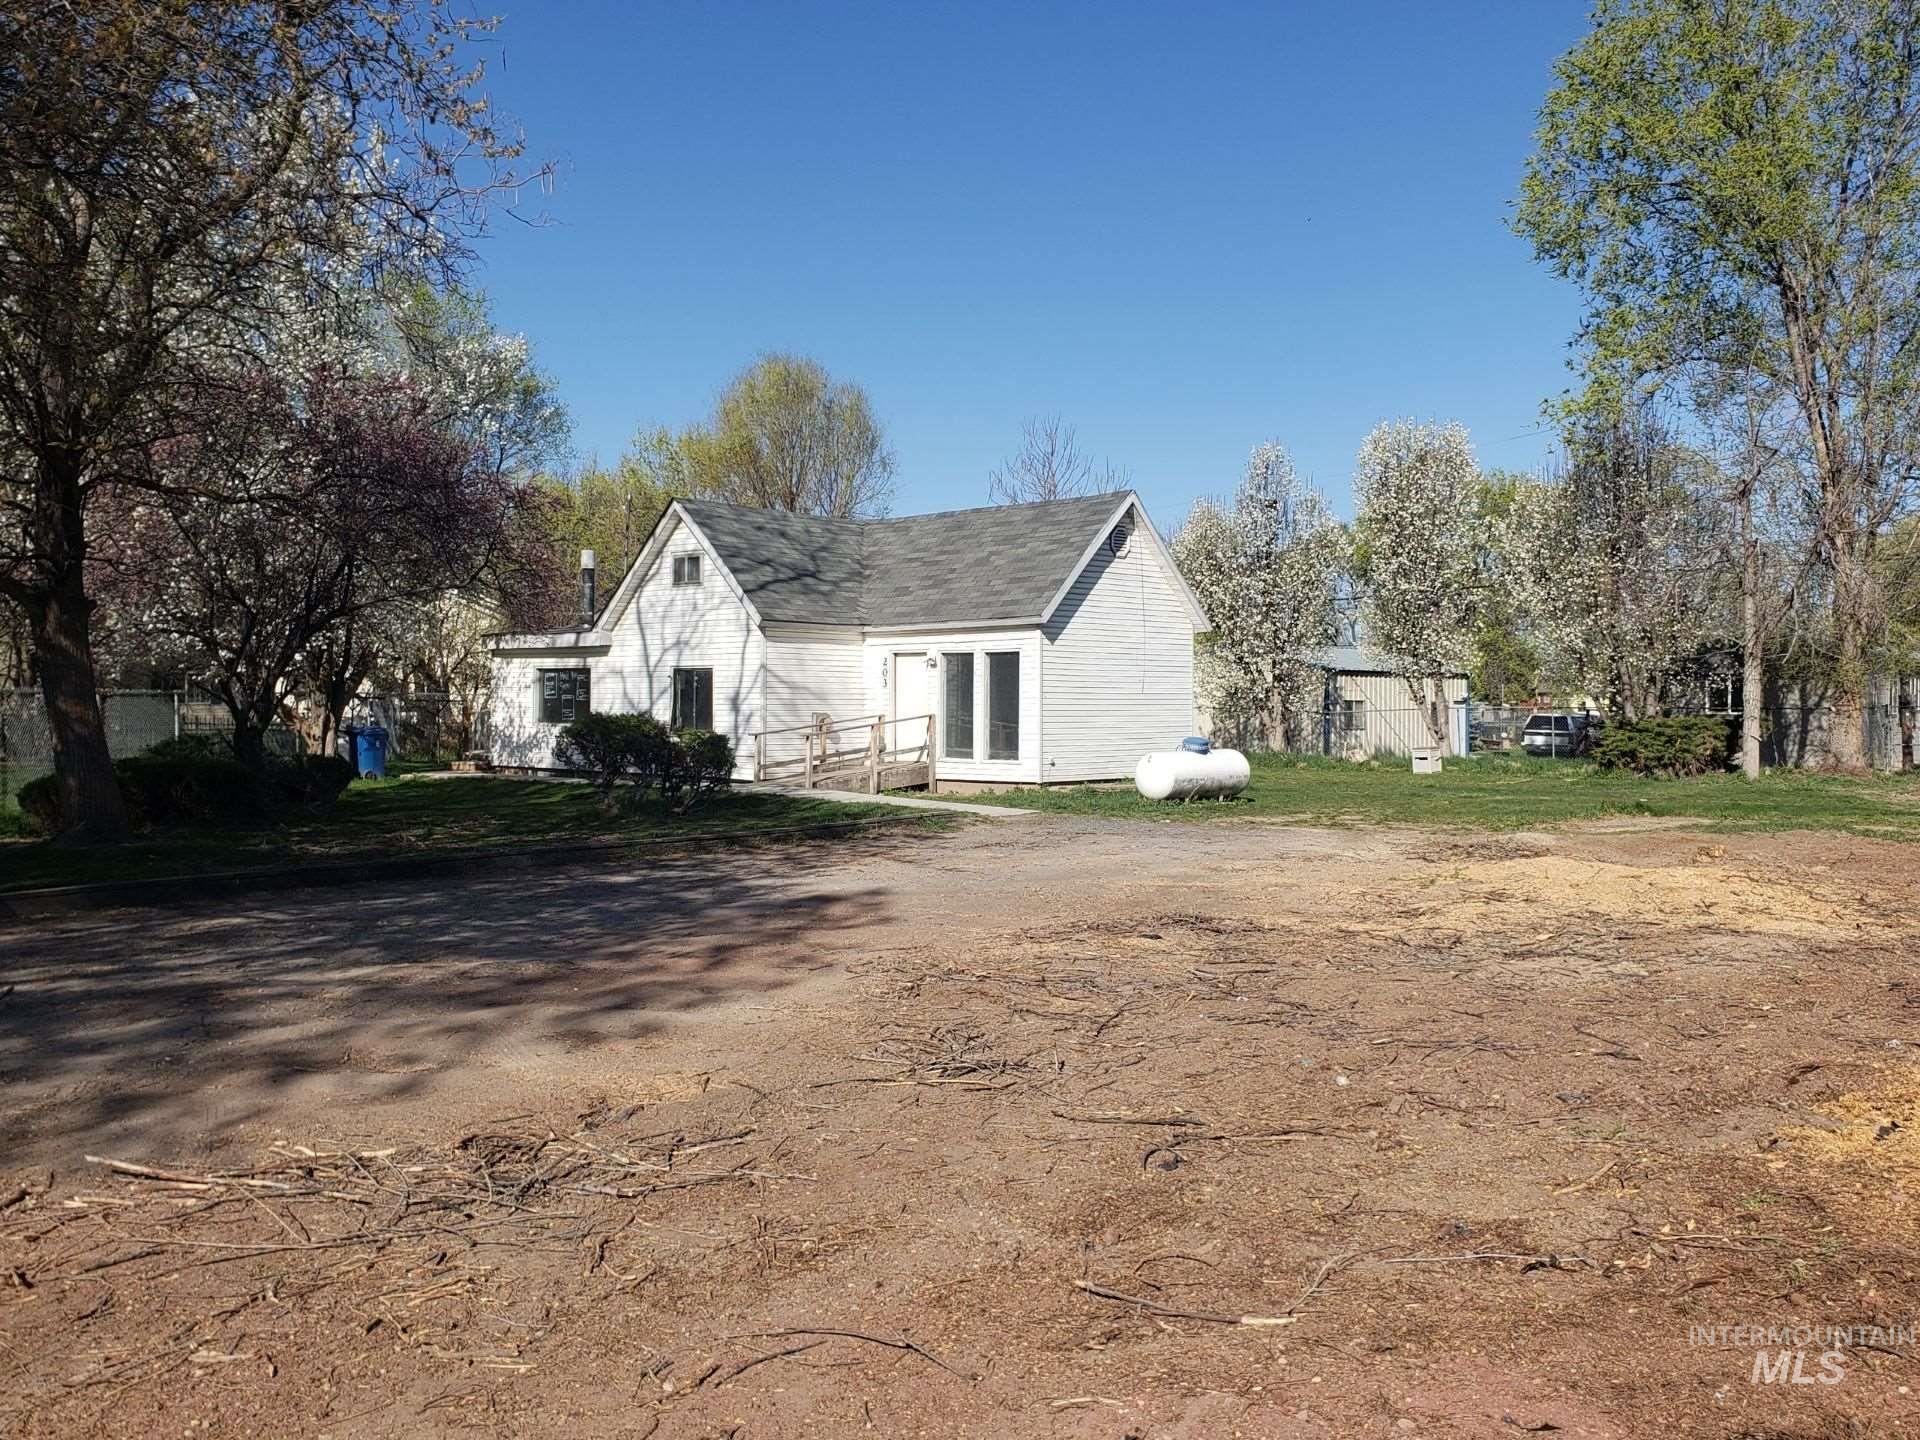 Photo of 203 20th Ave N, Nampa, ID 83687 (MLS # 98798851)